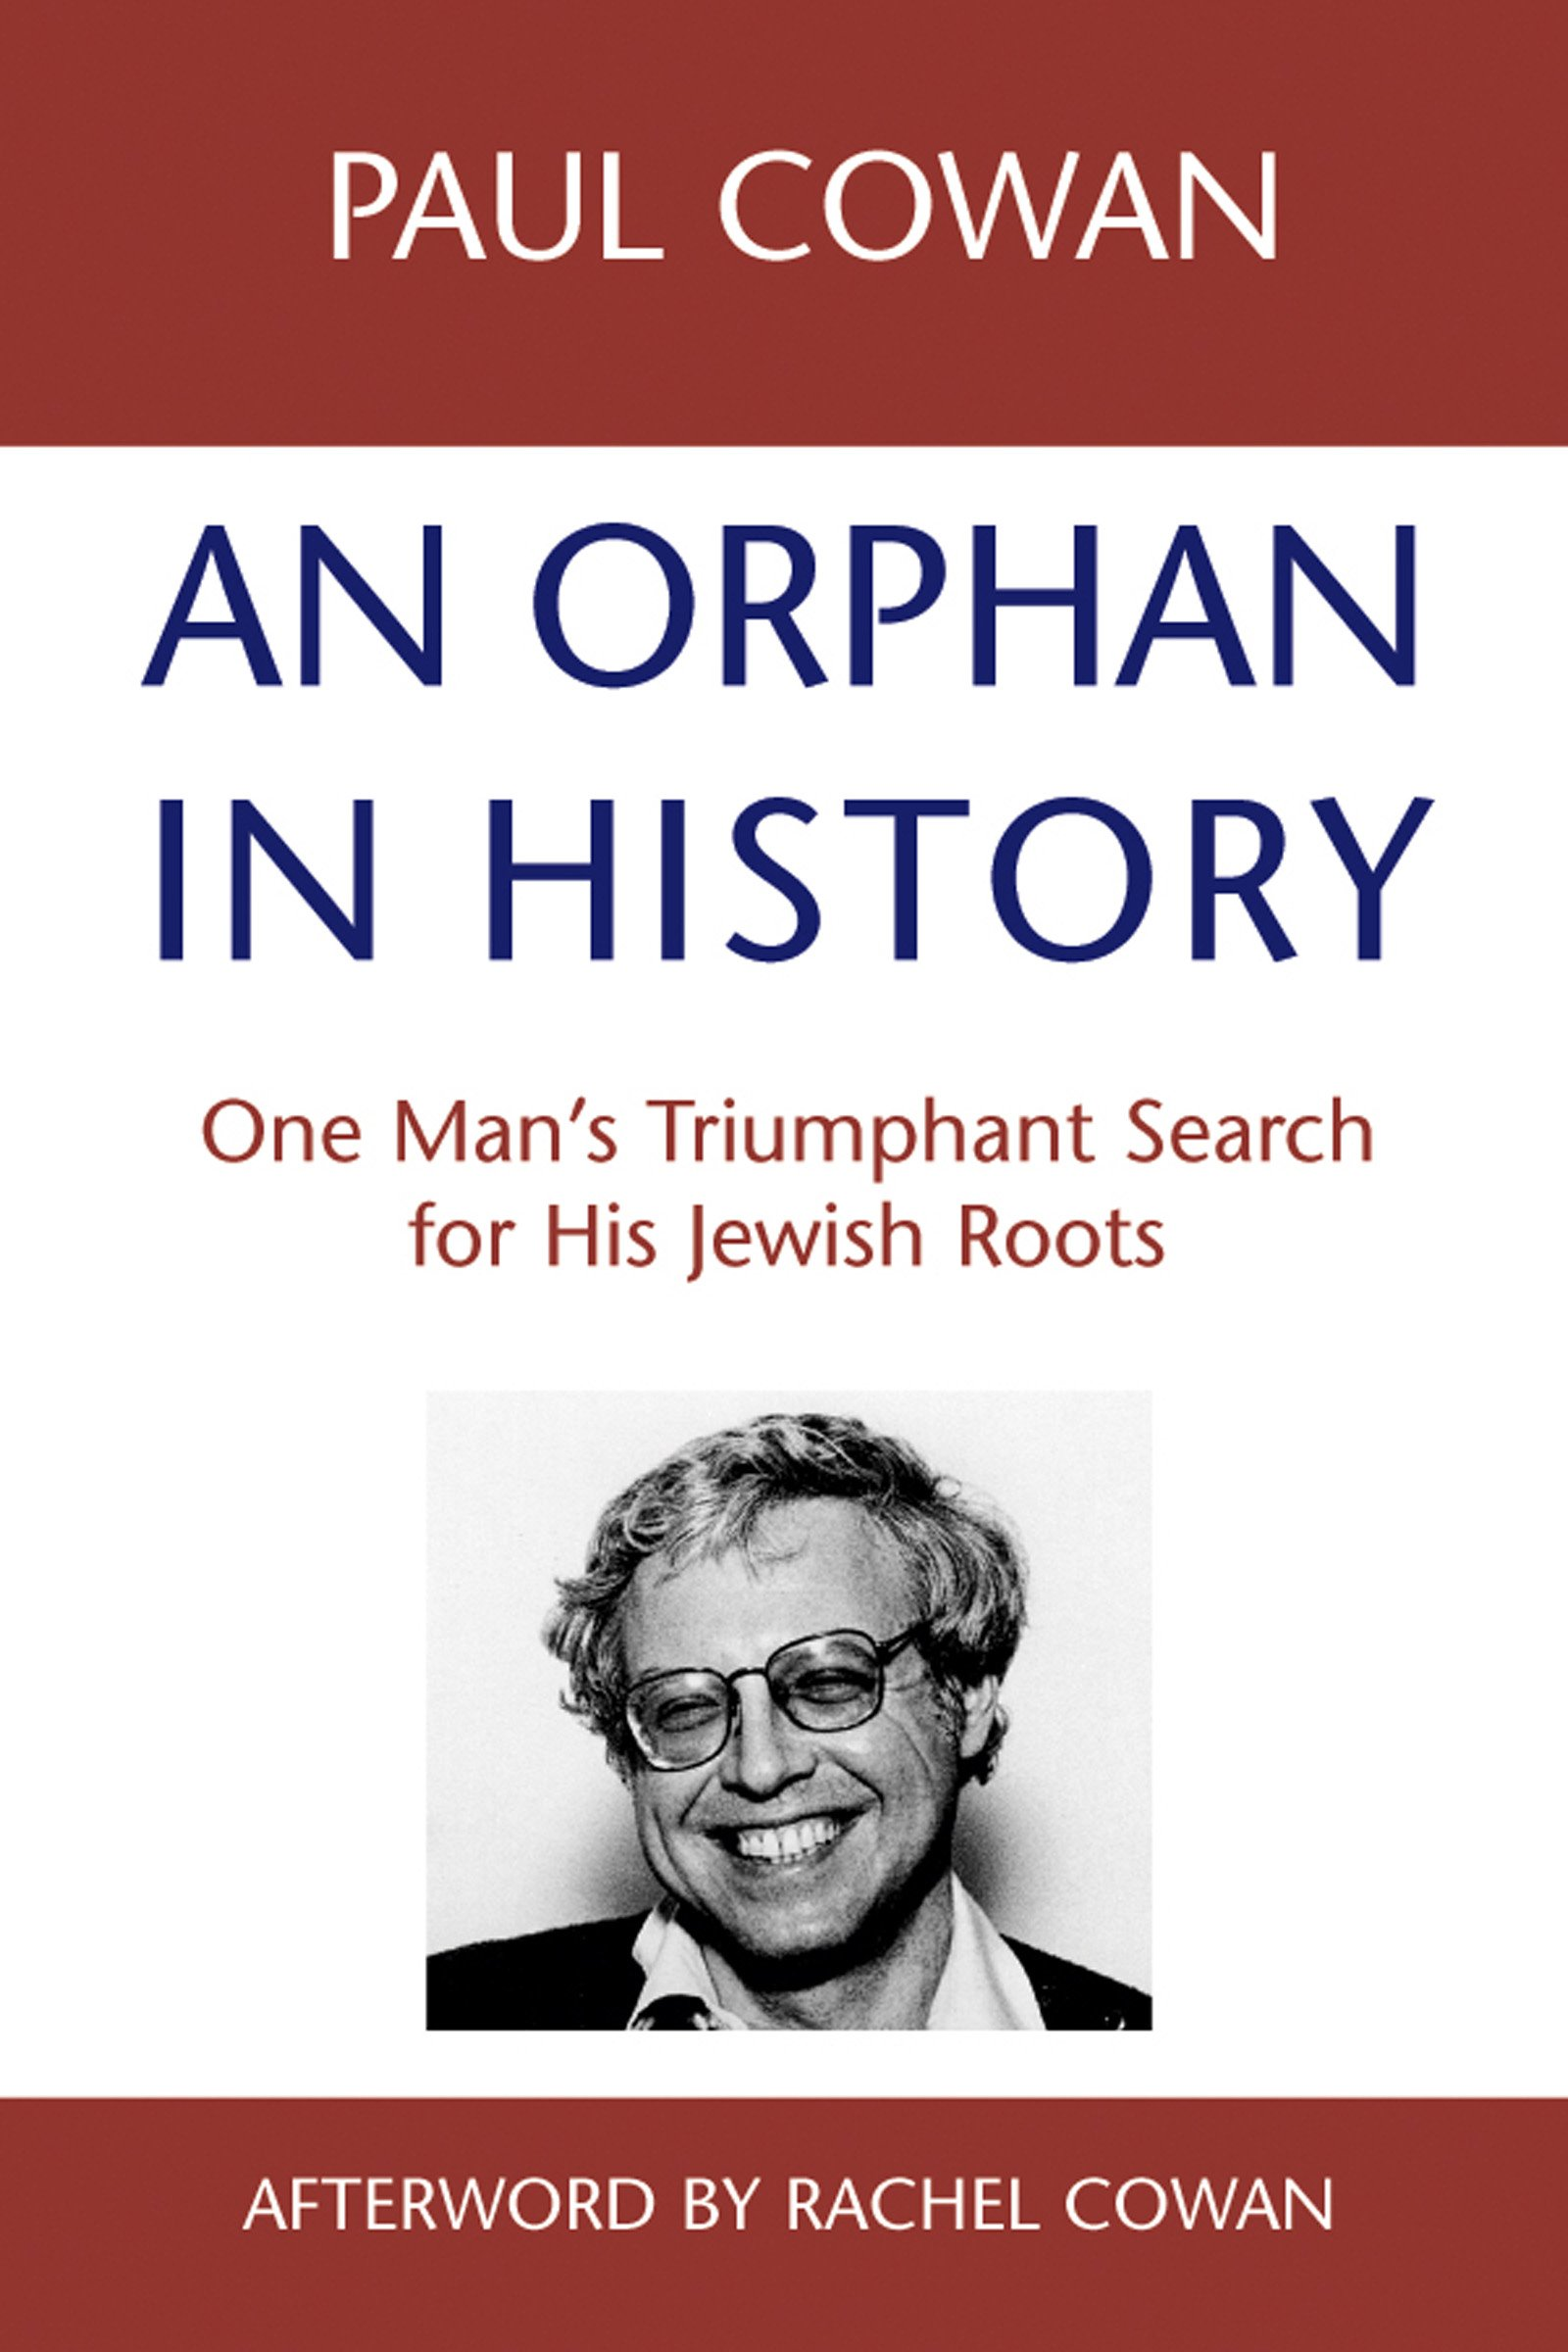 An Orphan in History: One Man's Triumphant Search for His Jewish Roots pdf epub